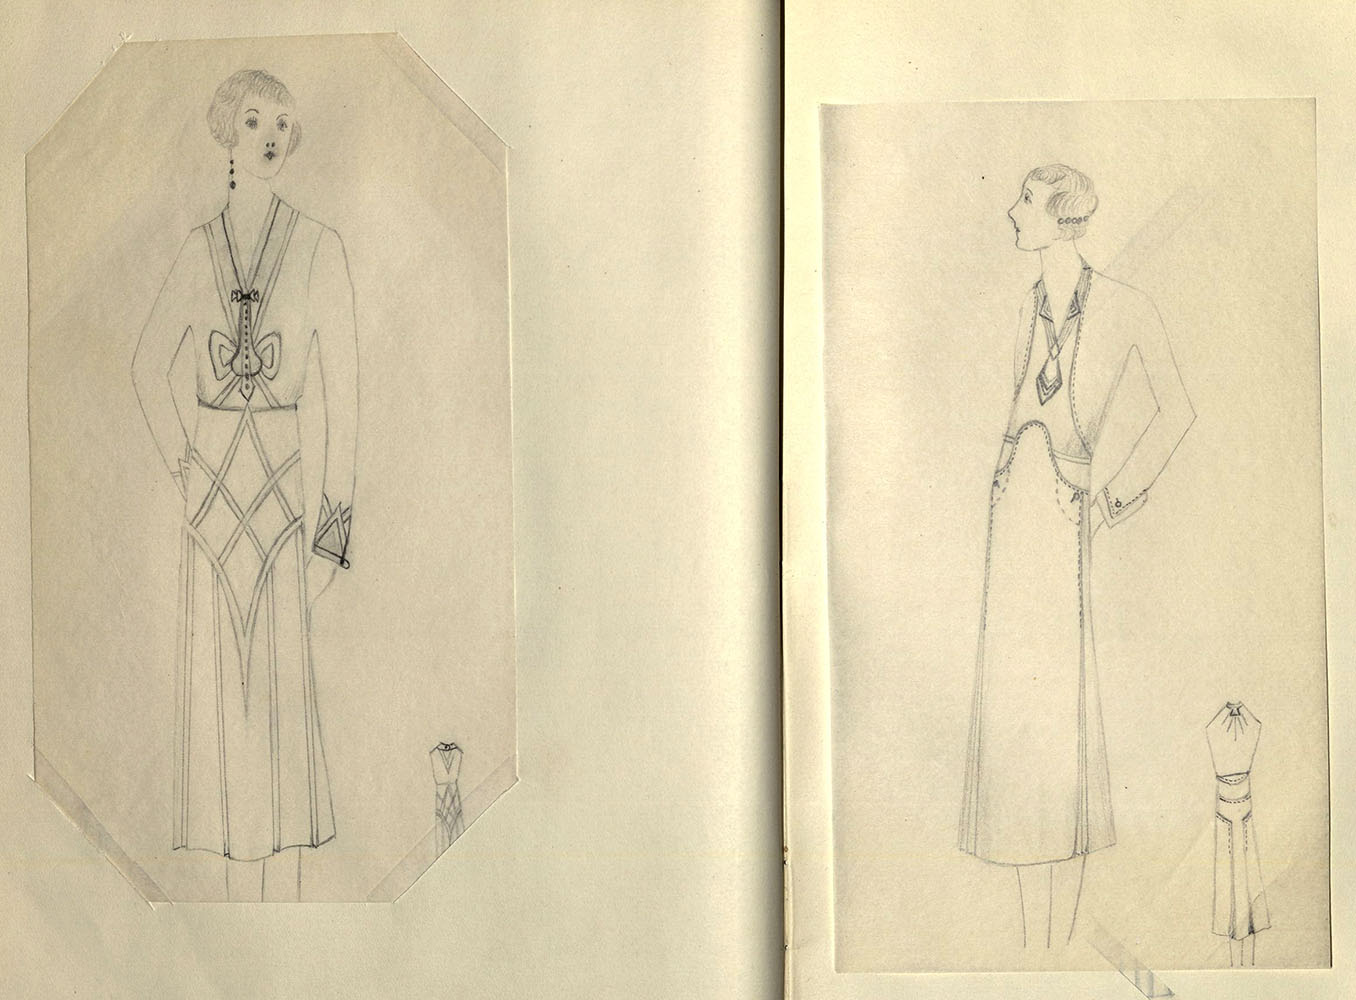 Sketch book of Theresa Balog, designer and dressmaker.